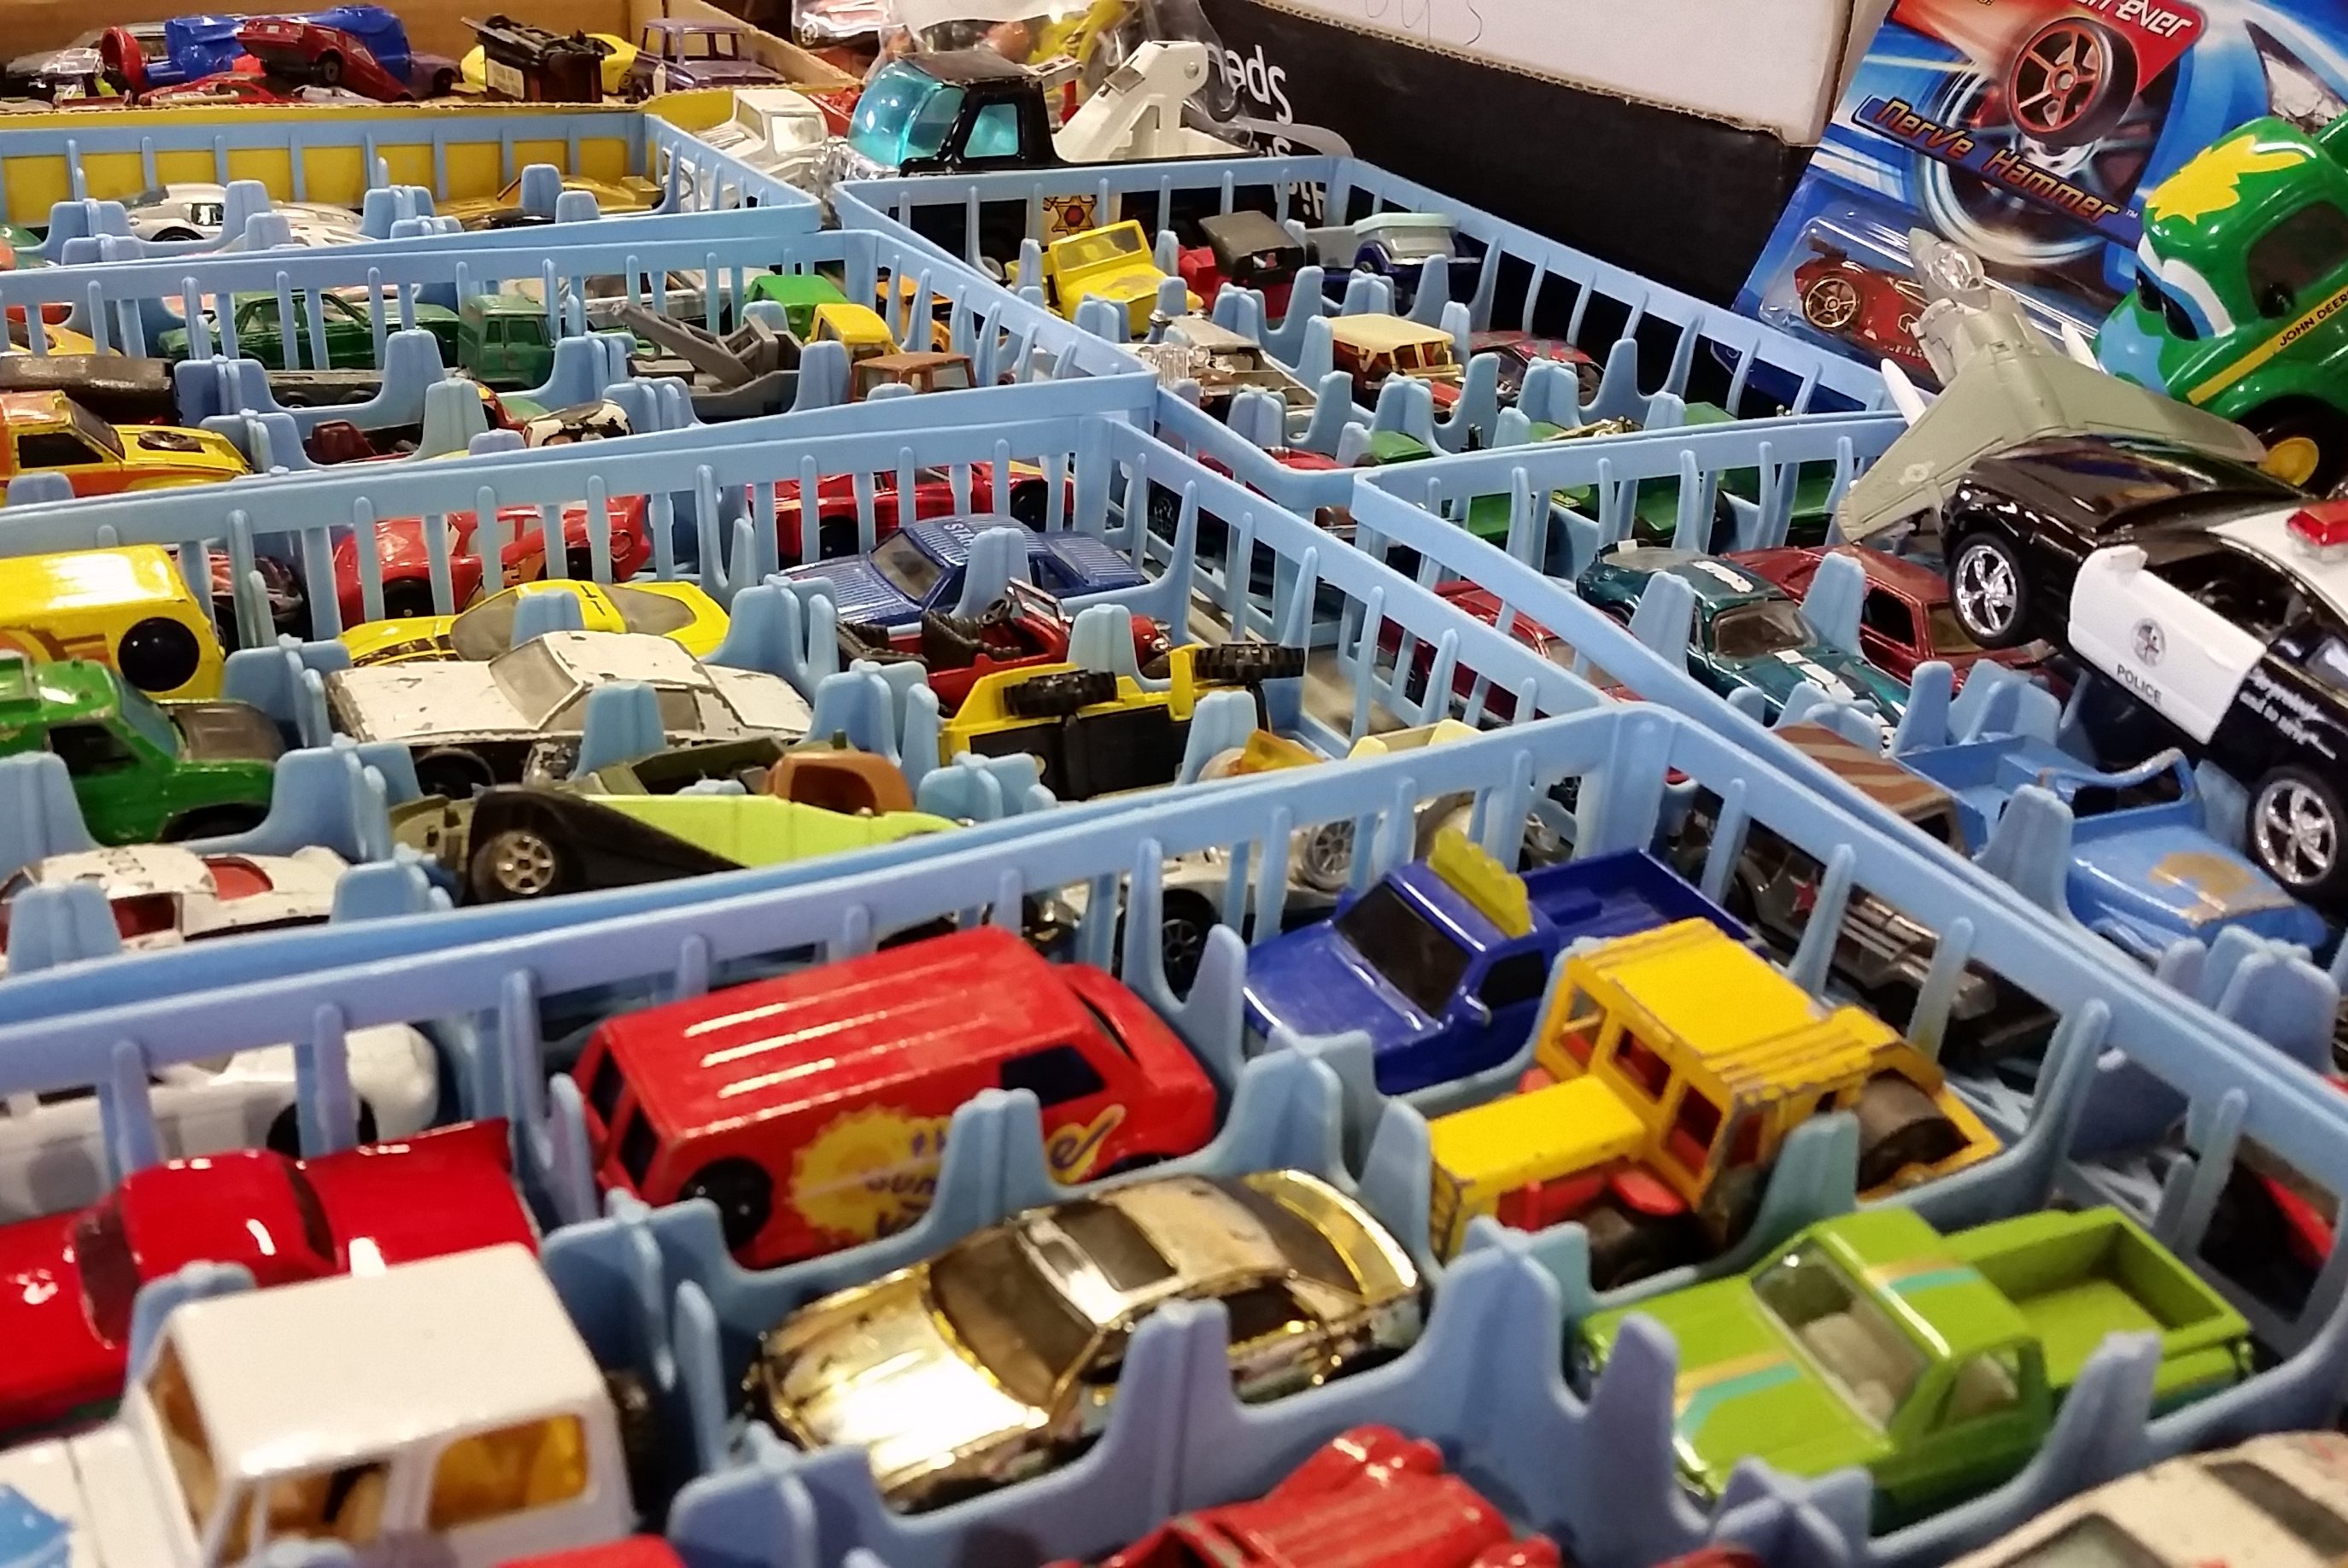 Matchbox Cars at the Dodge County Flea Market